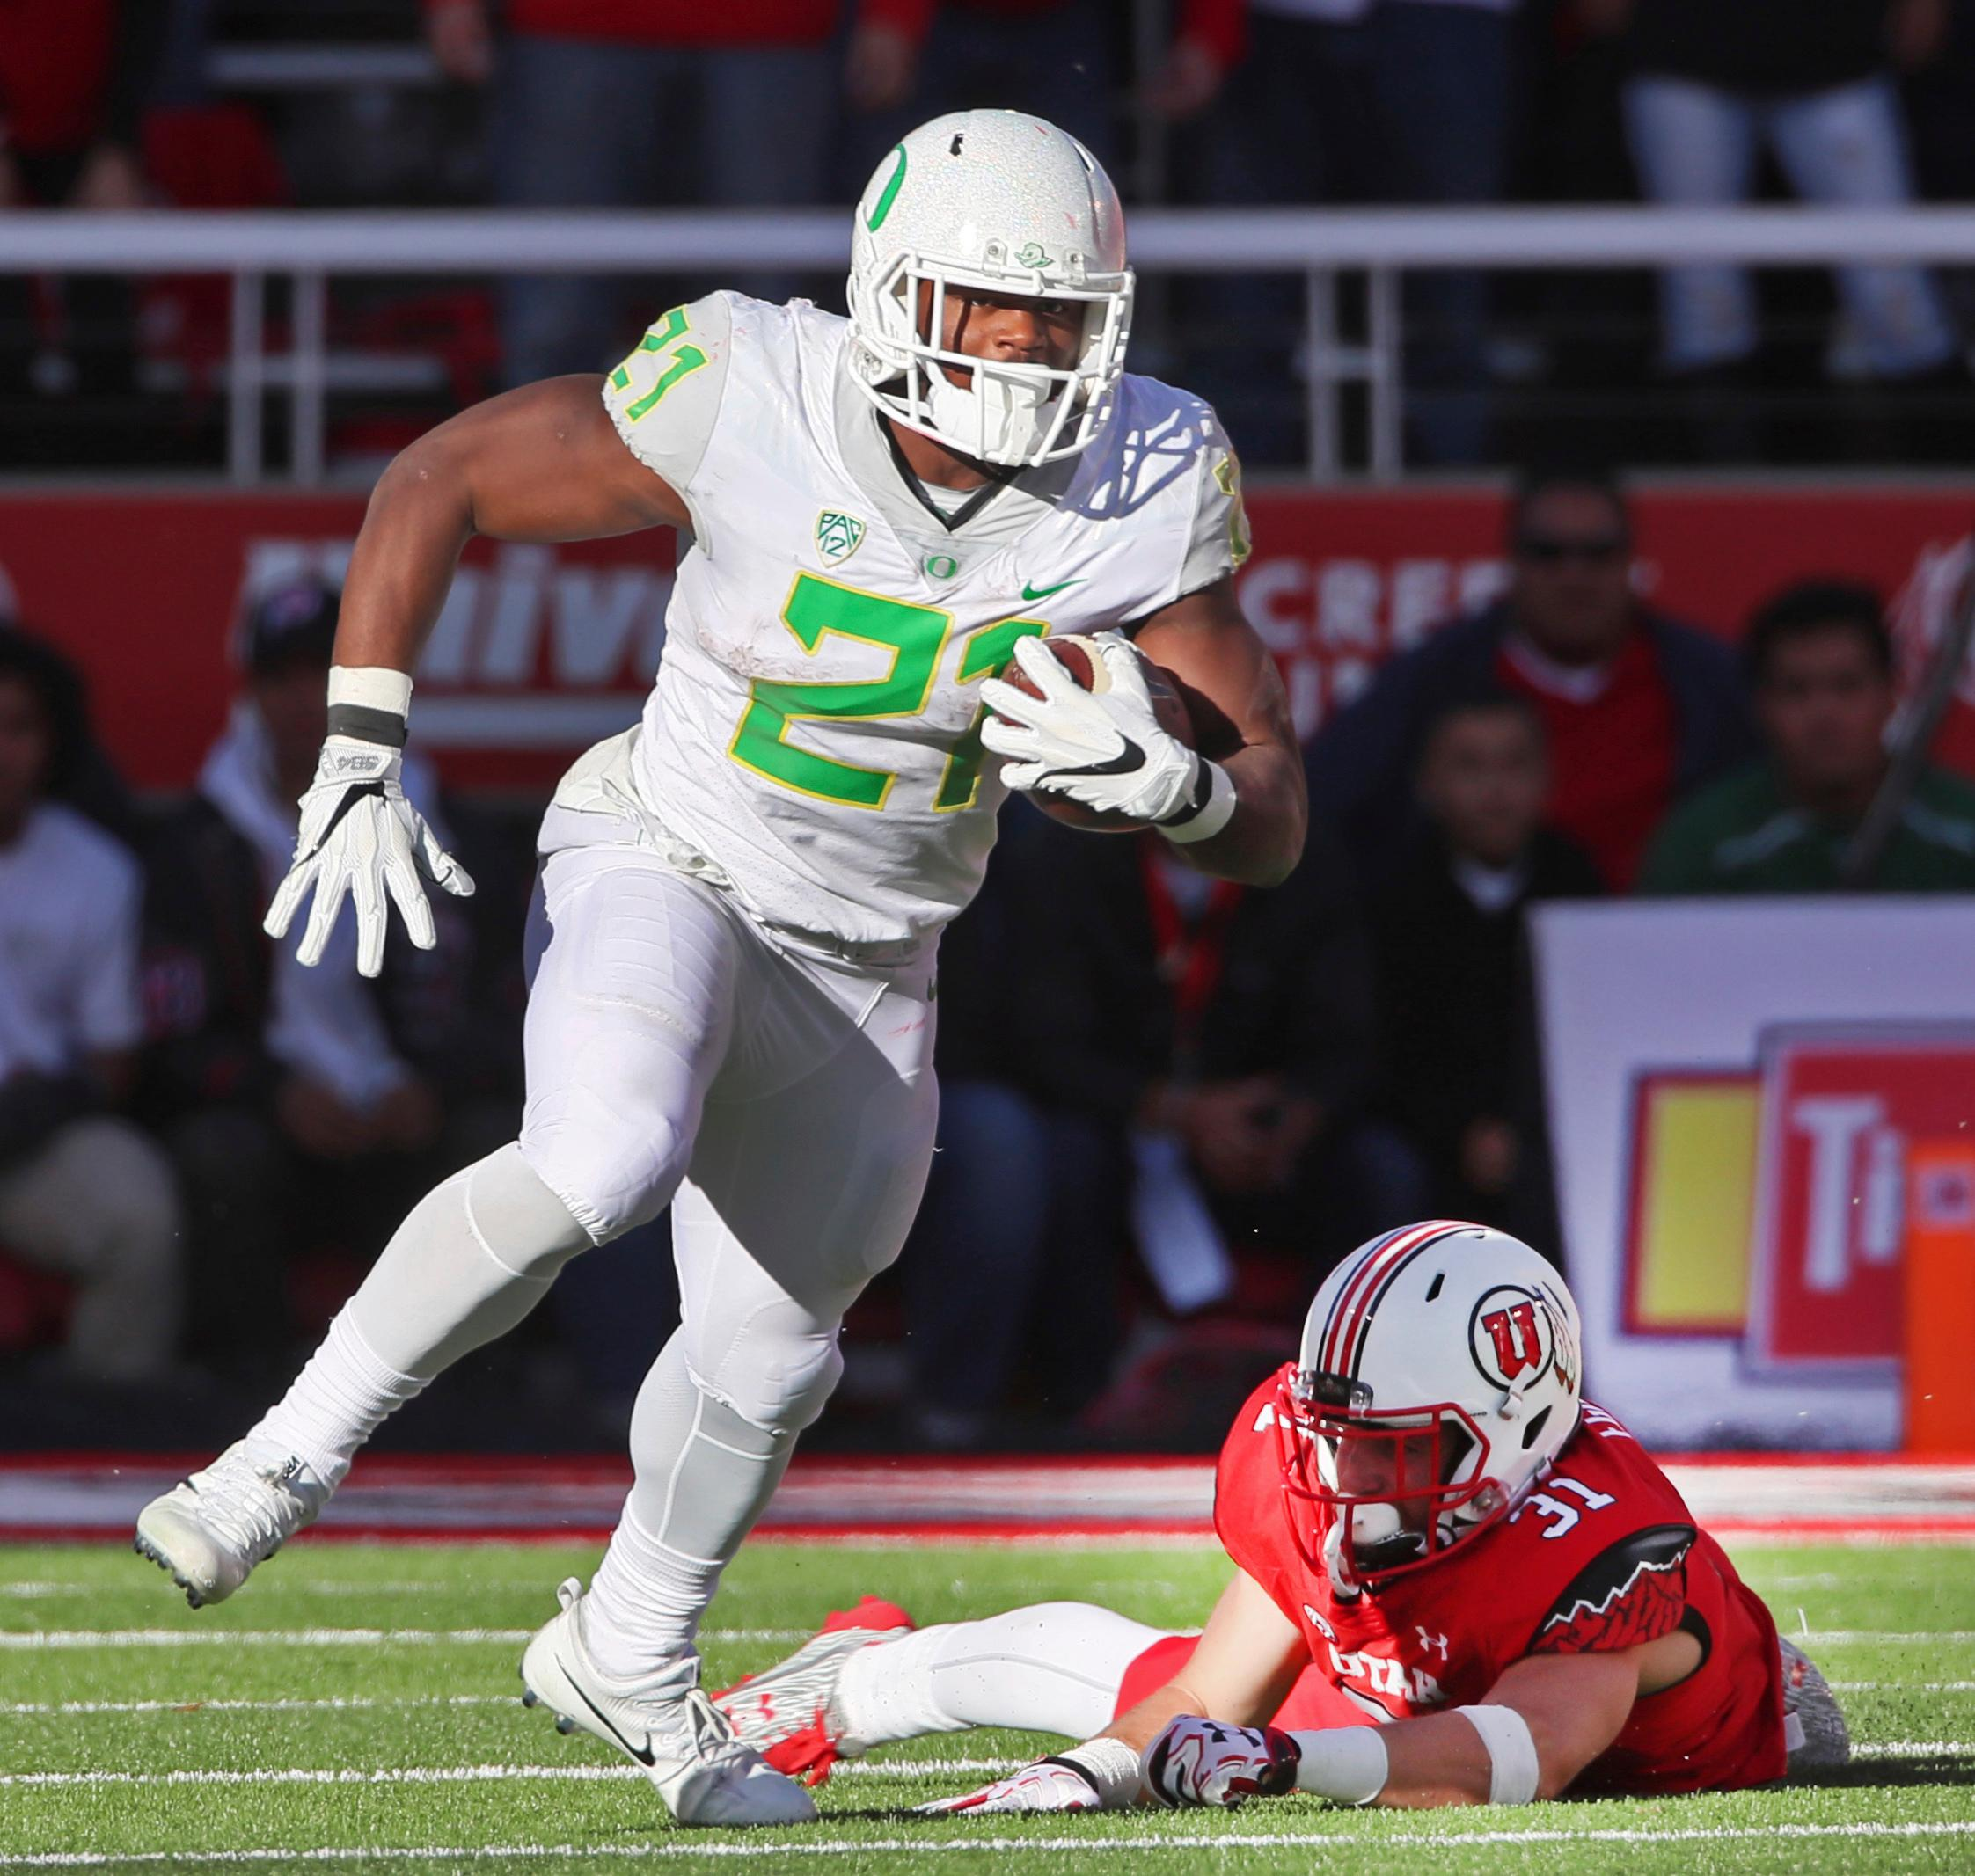 FILE - In this Nov. 19, 2016, file photo, Oregon running back Royce Freeman, left, runs past Utah linebacker Evan Eggiman in the second half of an NCAA college football game in Salt Lake City, Utah. Oregon running back Royce Freeman, USC quarterback Sam Darnold and UCLA quarterback Josh Rosen are among the Pac-12 players to keep an eye on coming out of spring practice. (AP Photo/George Frey, file)